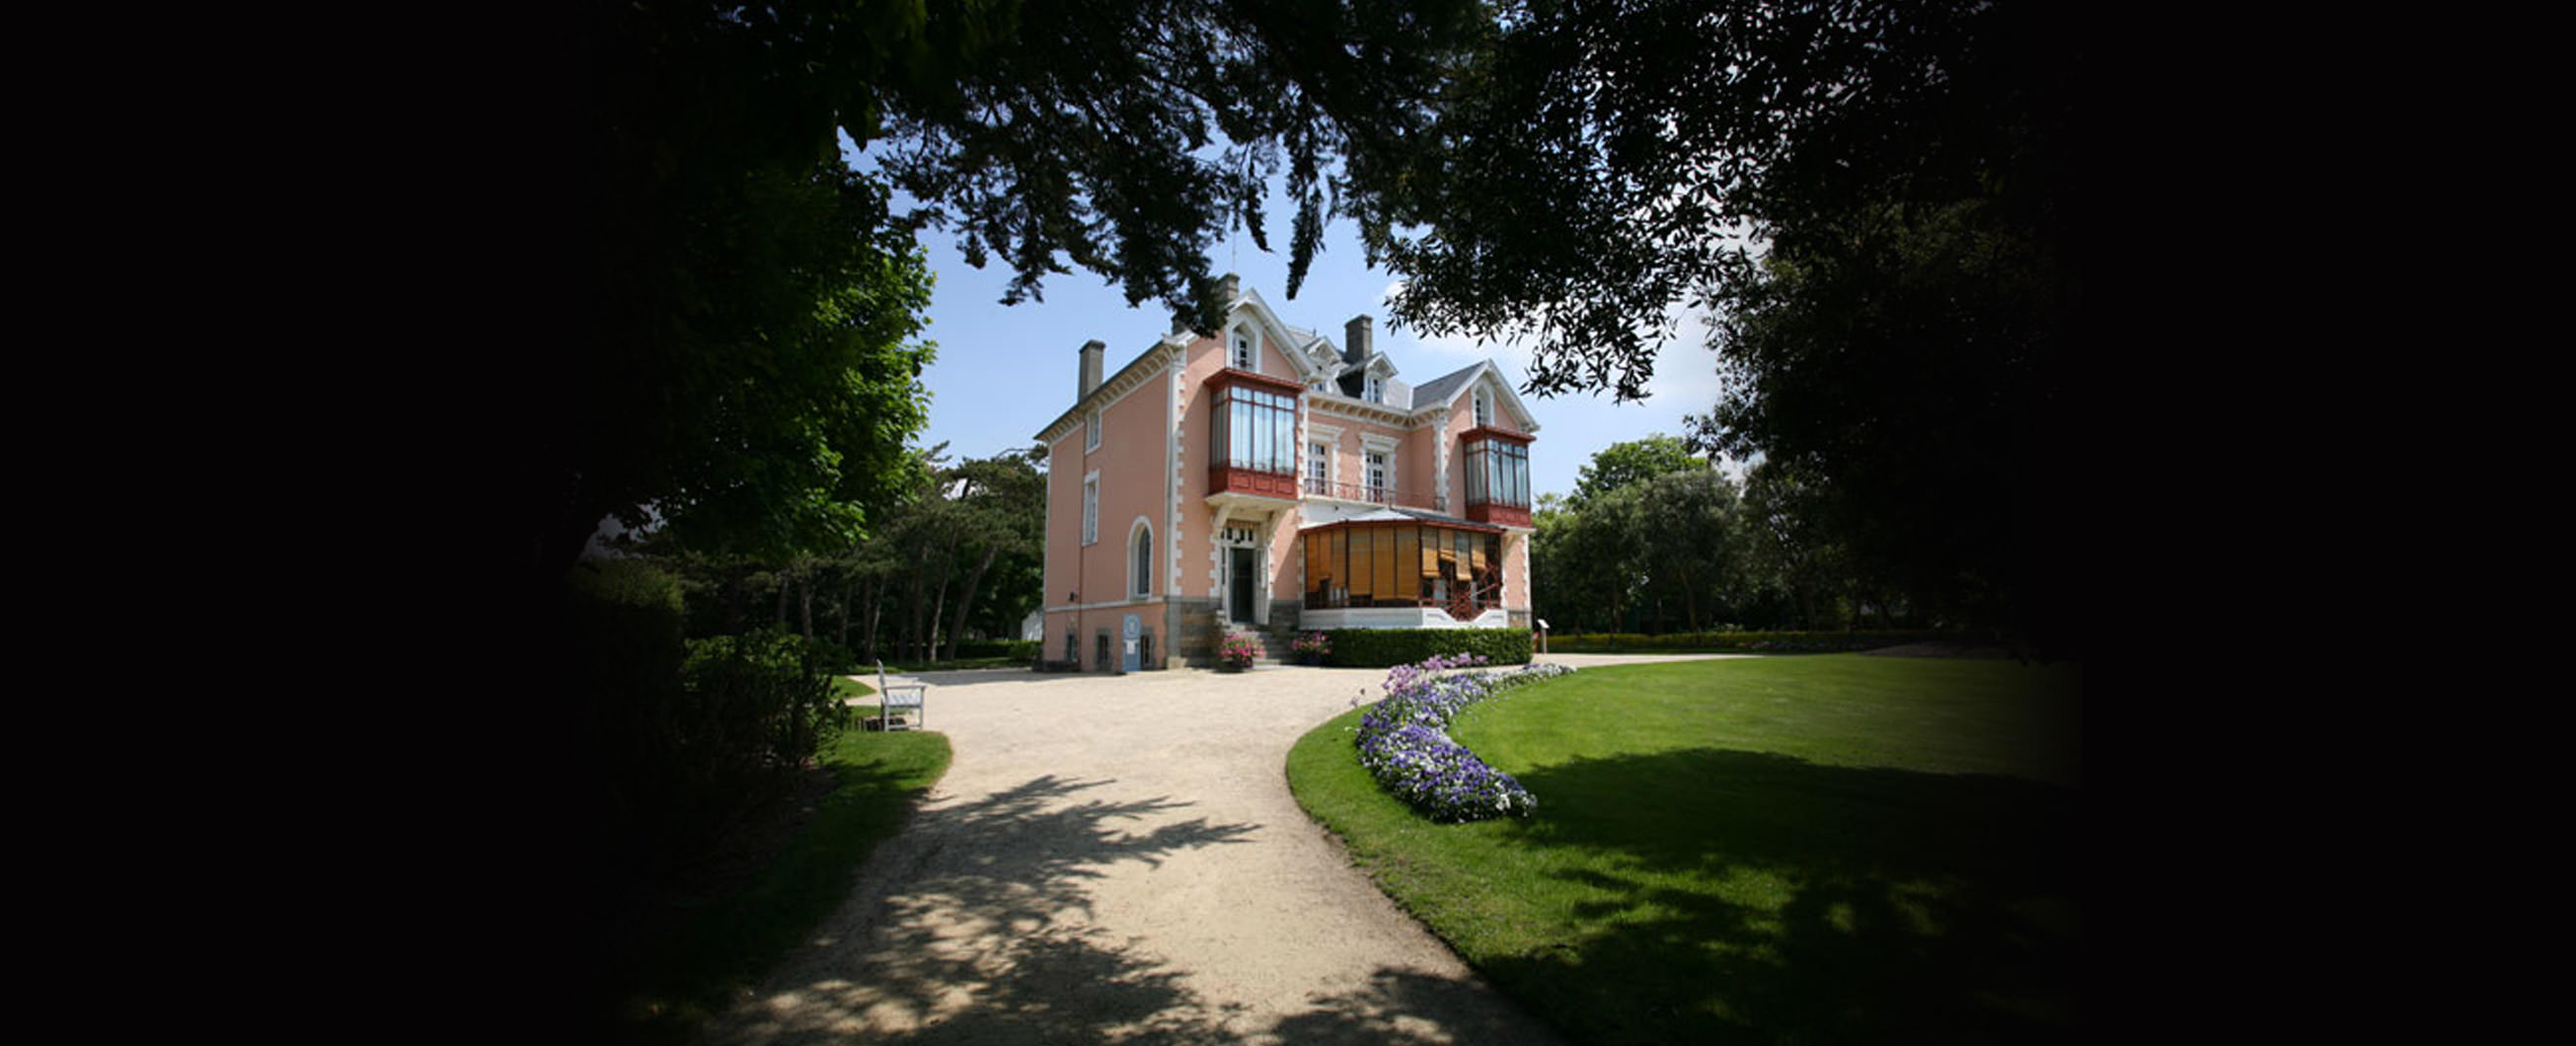 Yes, Mr. Dior. Childhood home of Christian Dior located in Granville, France near the town of Normandy.